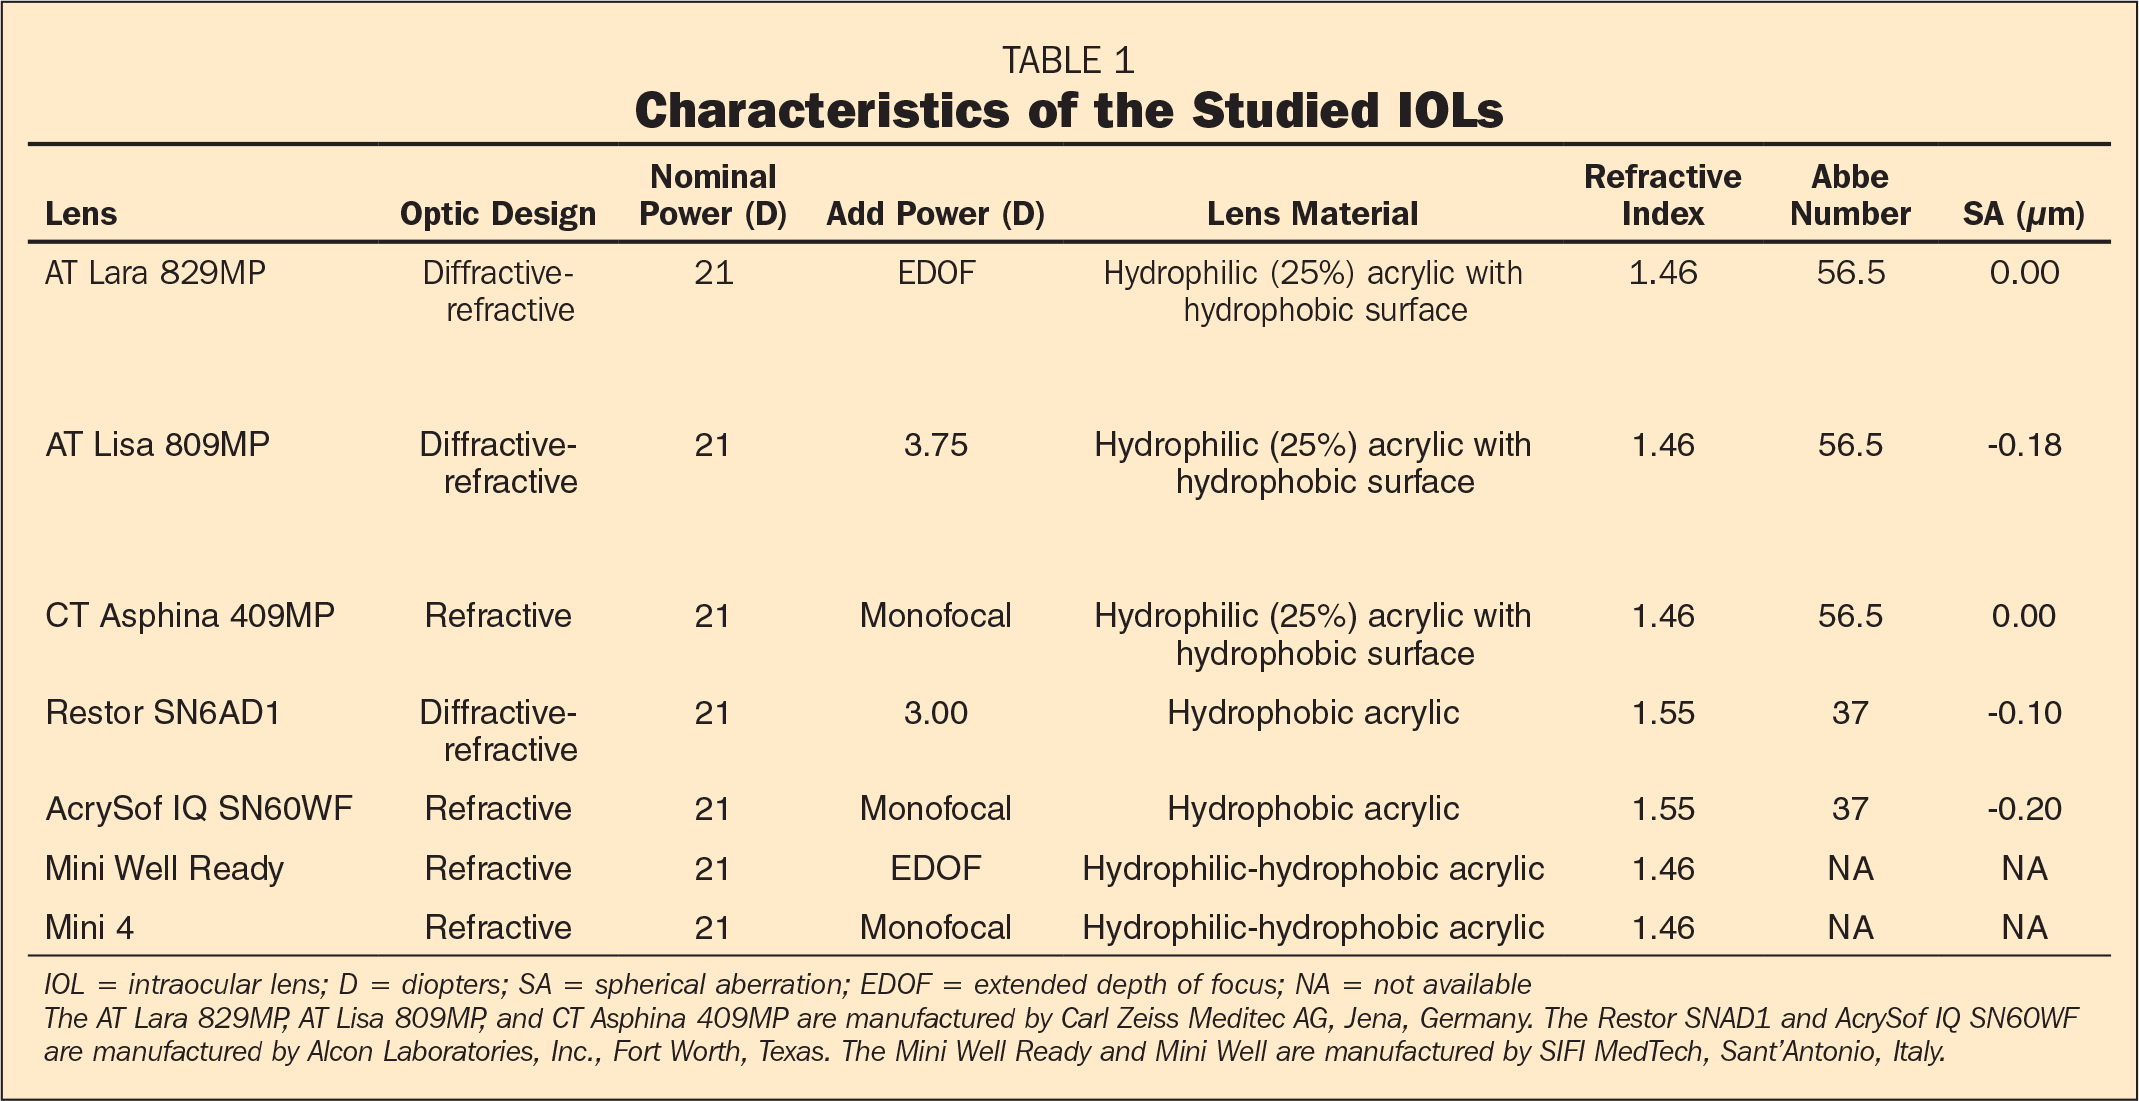 Characteristics of the Studied IOLs